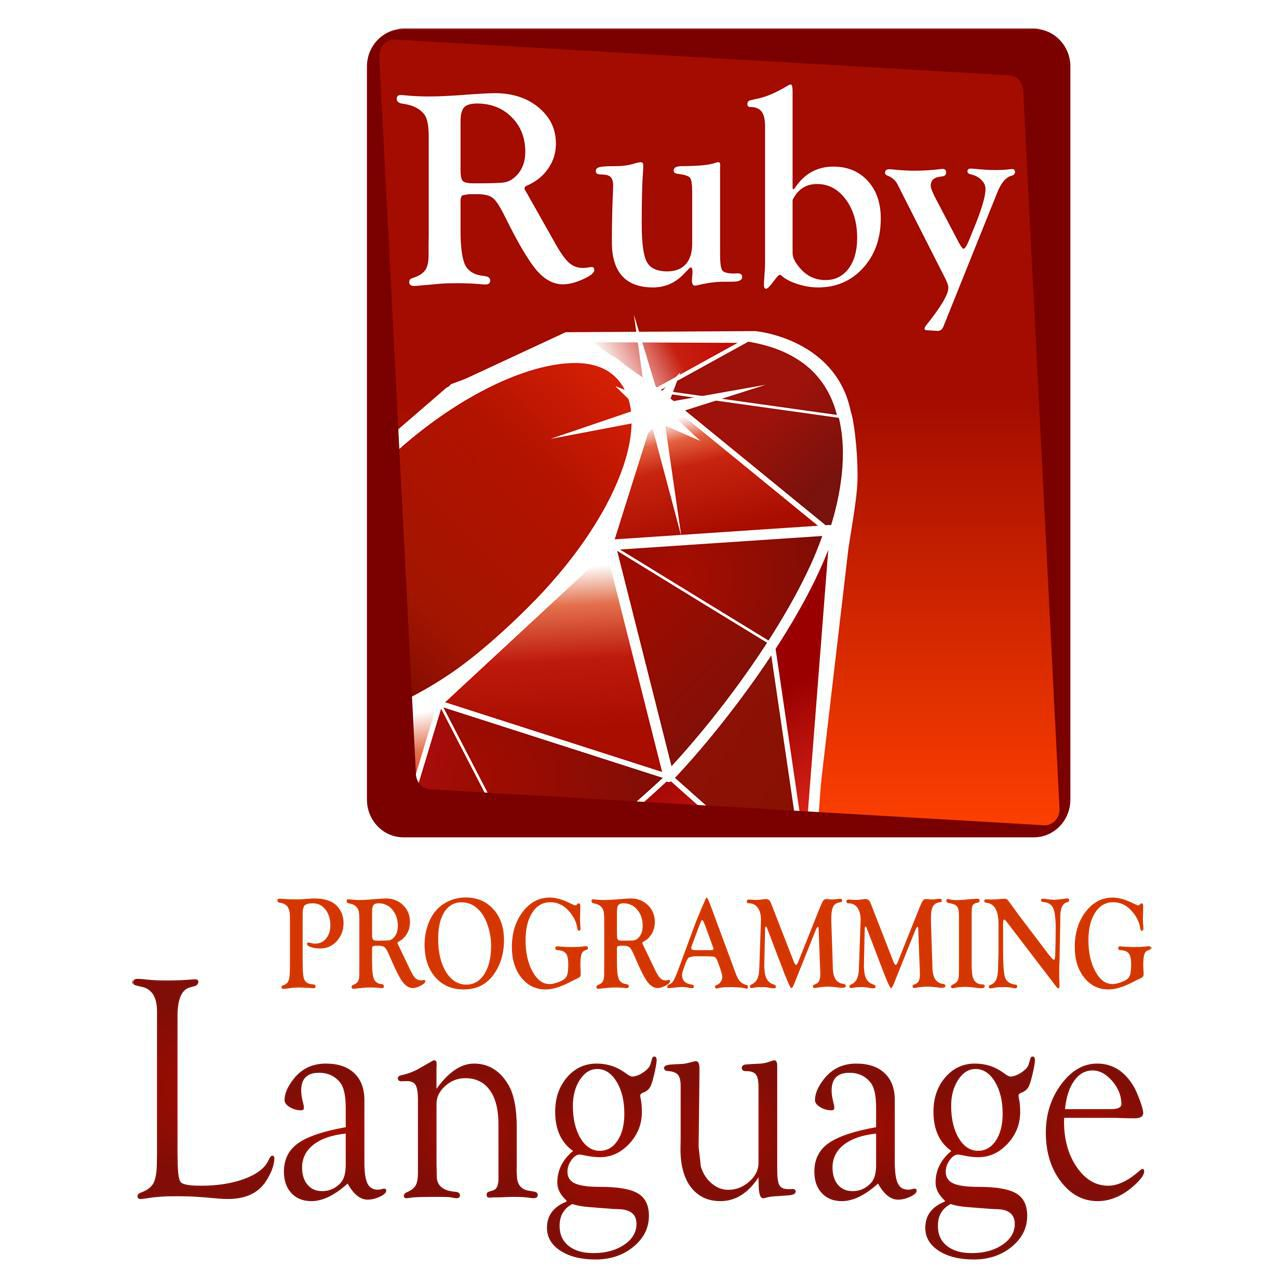 Ruby courses and tutorials